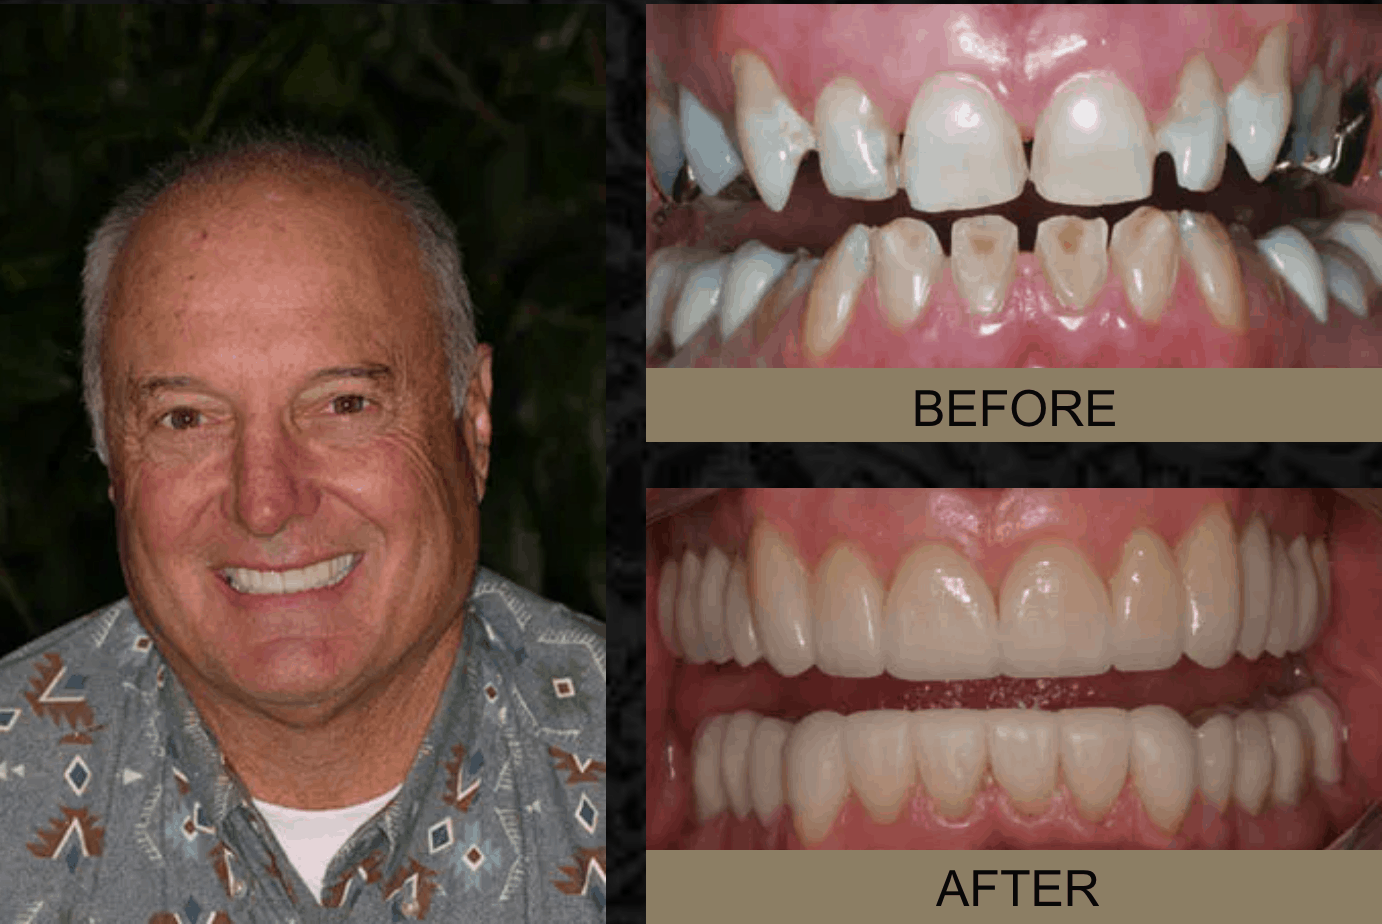 Merritt - Before and After Smile